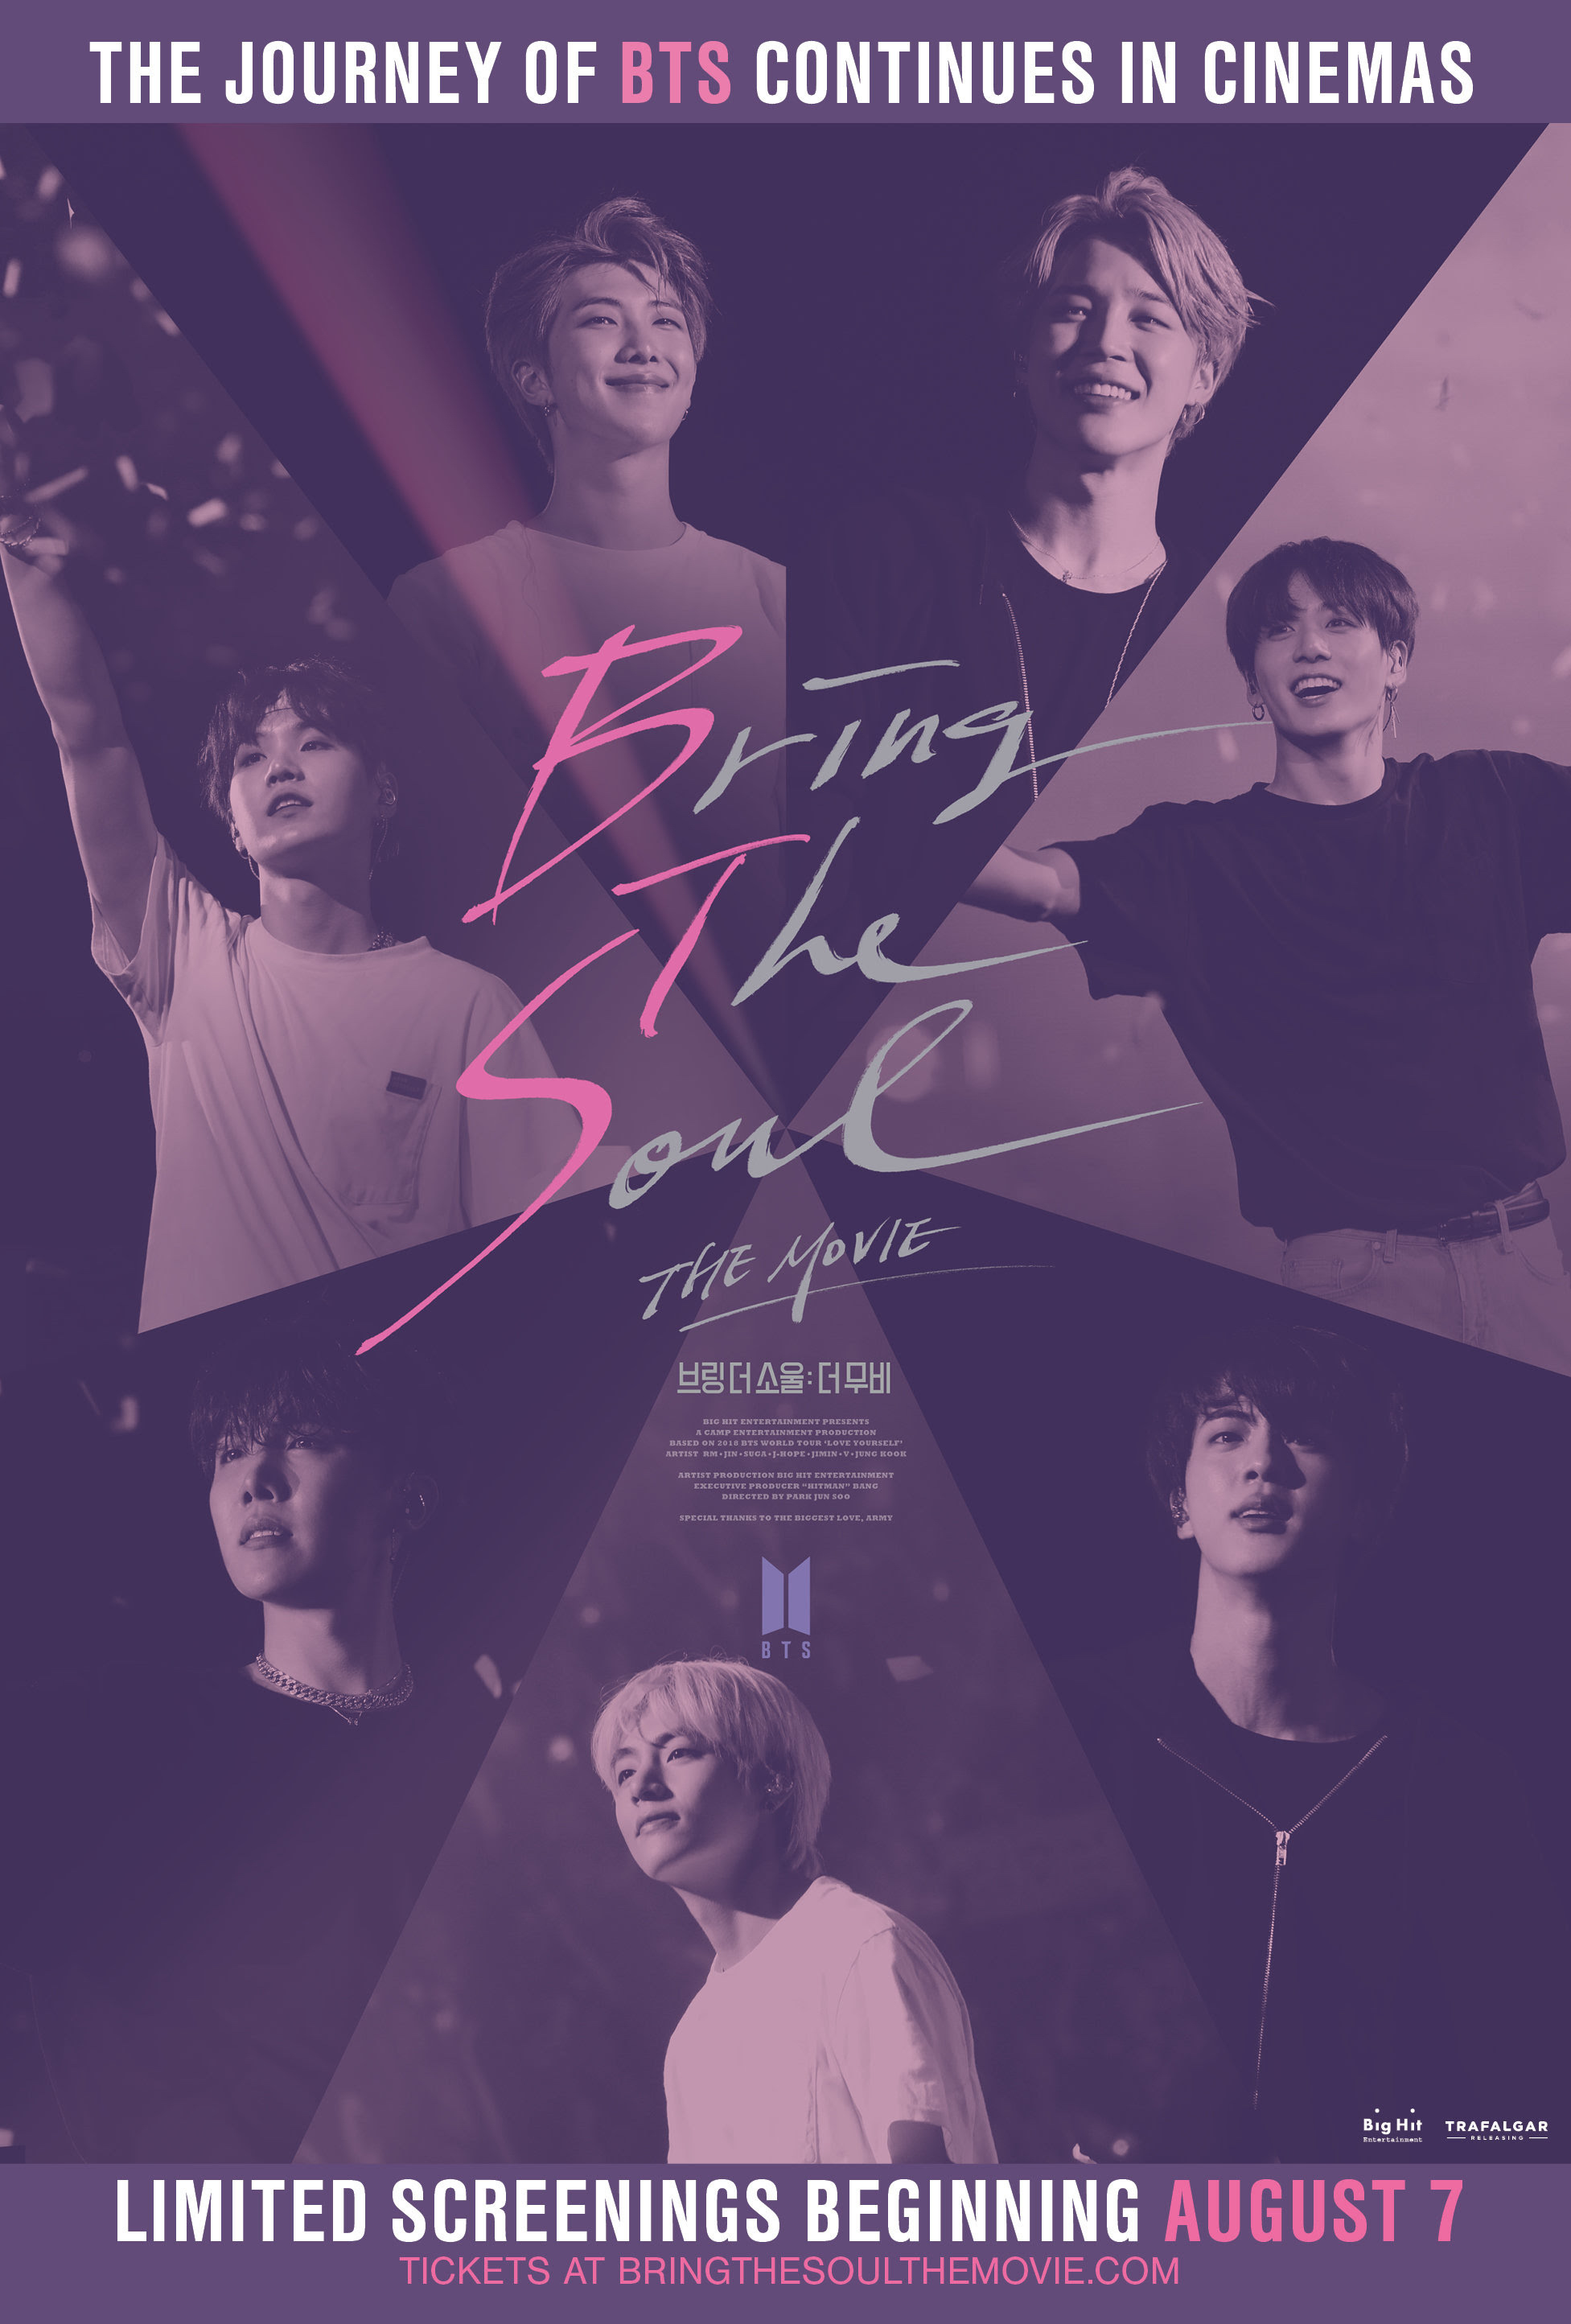 BTS Bring the Soul the Movie poster